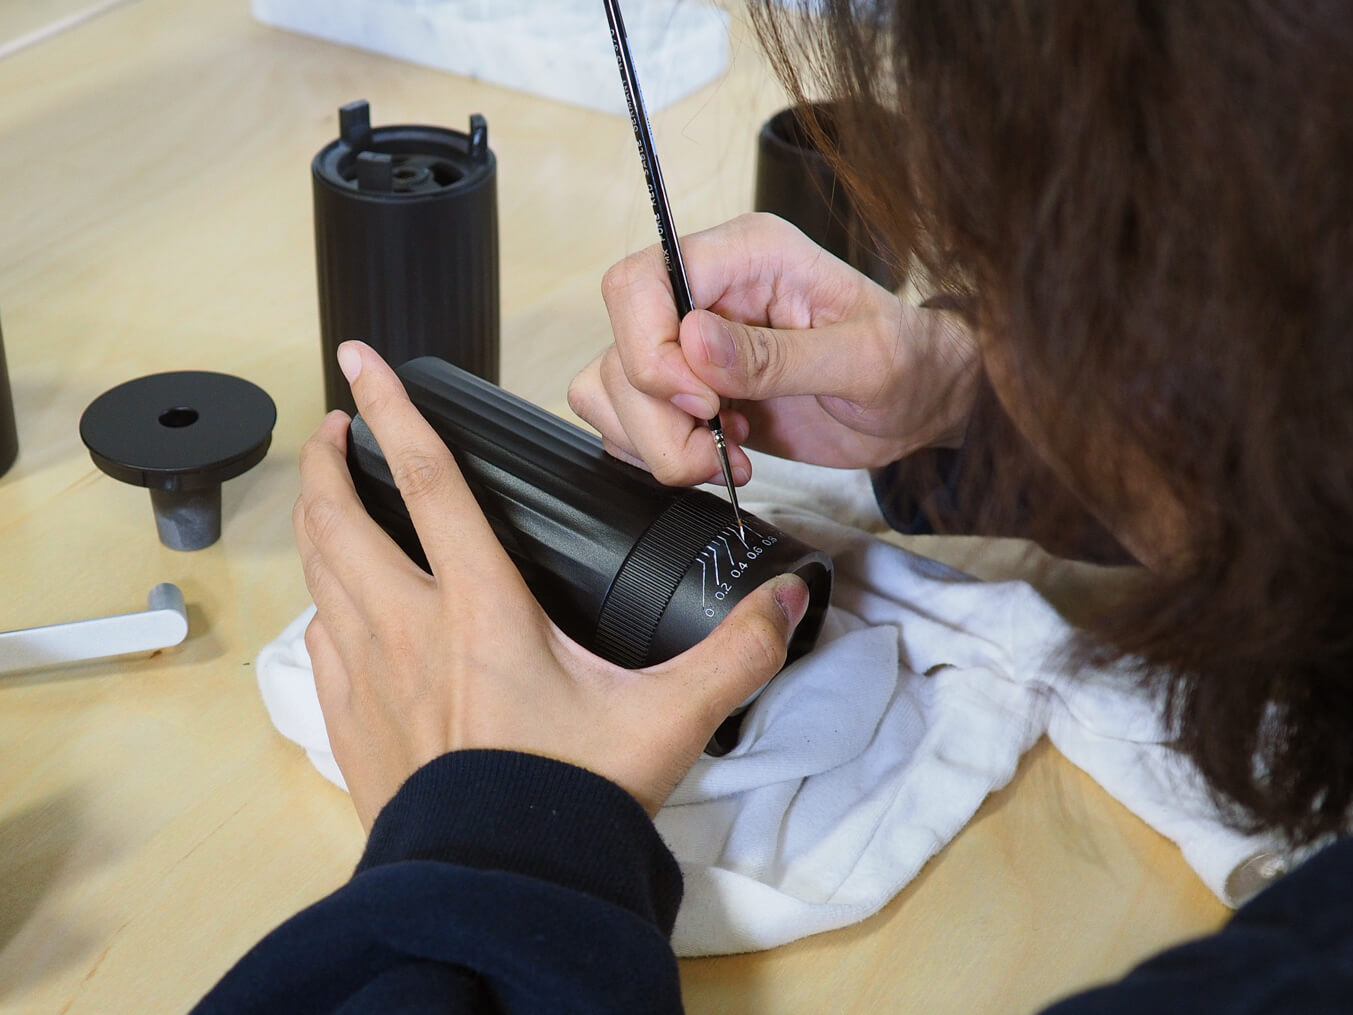 Carefully painting the grind measurements by hand on a prototype of the HIKU hand coffee grinder.